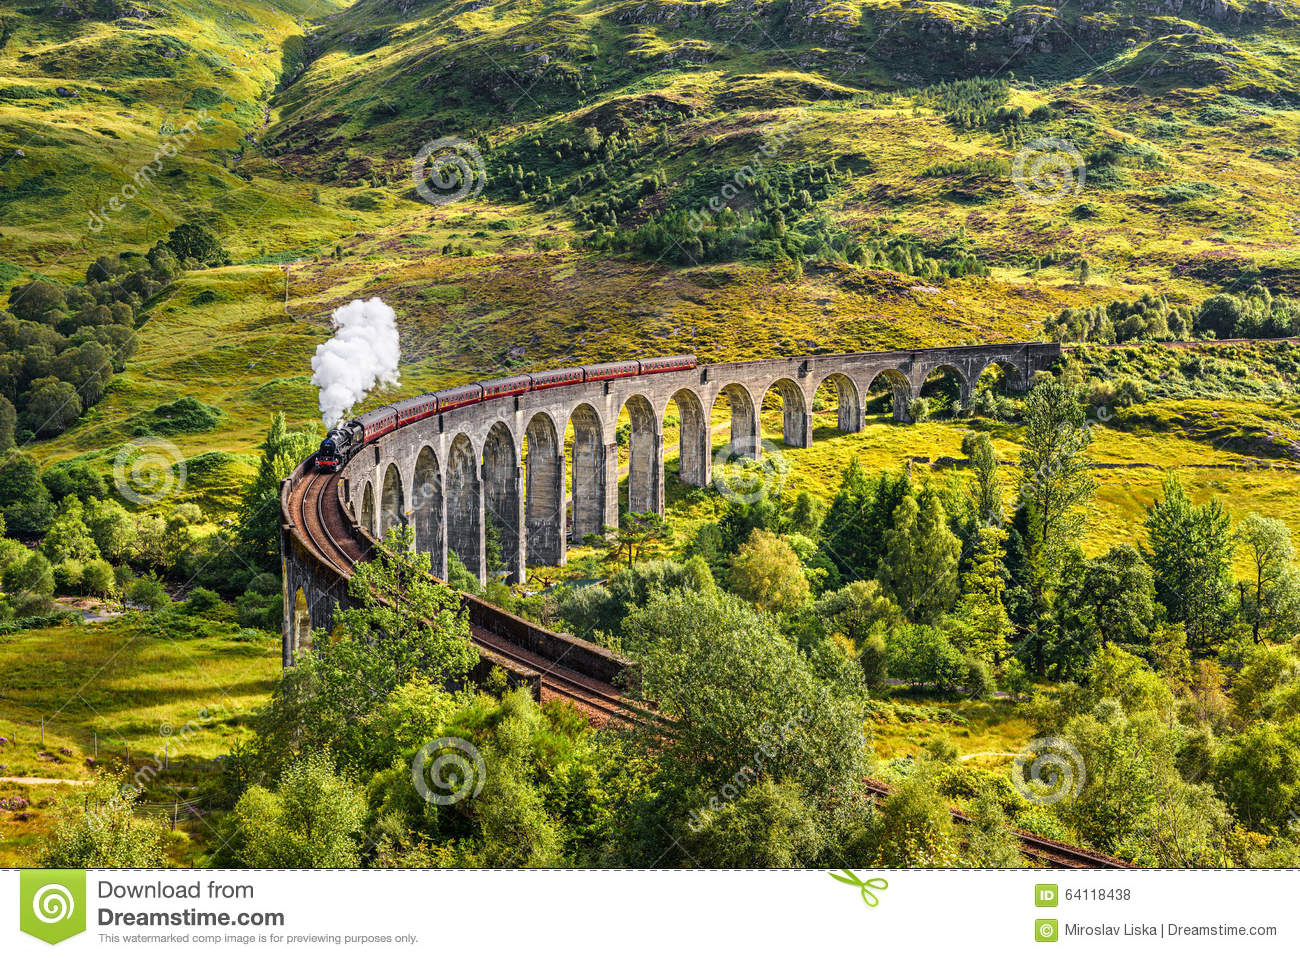 Download Glenfinnan Railway Viaduct In Scotland With A Steam Train Stock Photo - Image of harry, mountains: 64118438